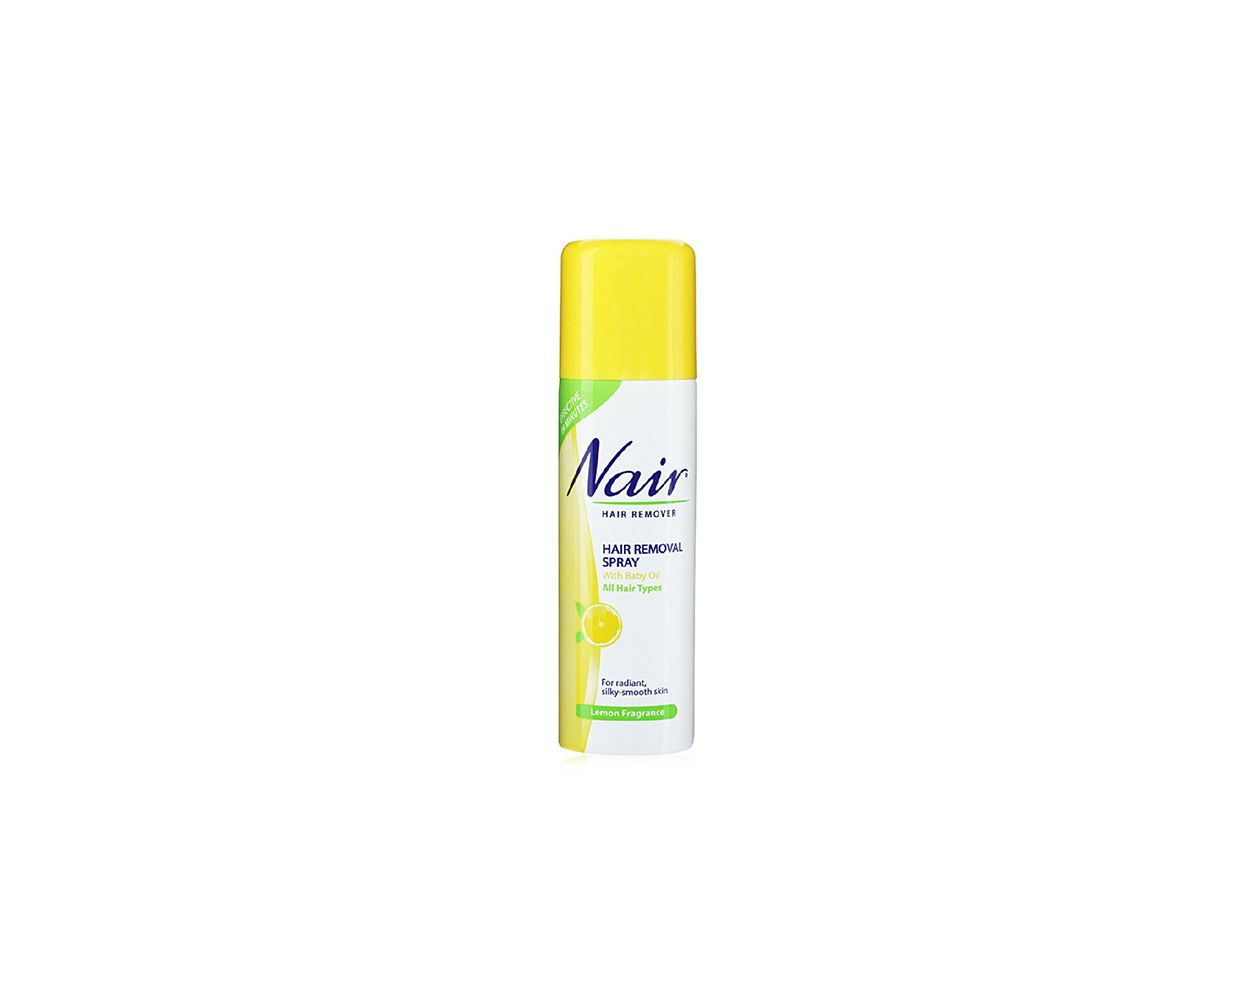 Nair Hair Removal Spray 200ml 2 Hours Free Delivery Anywhere In